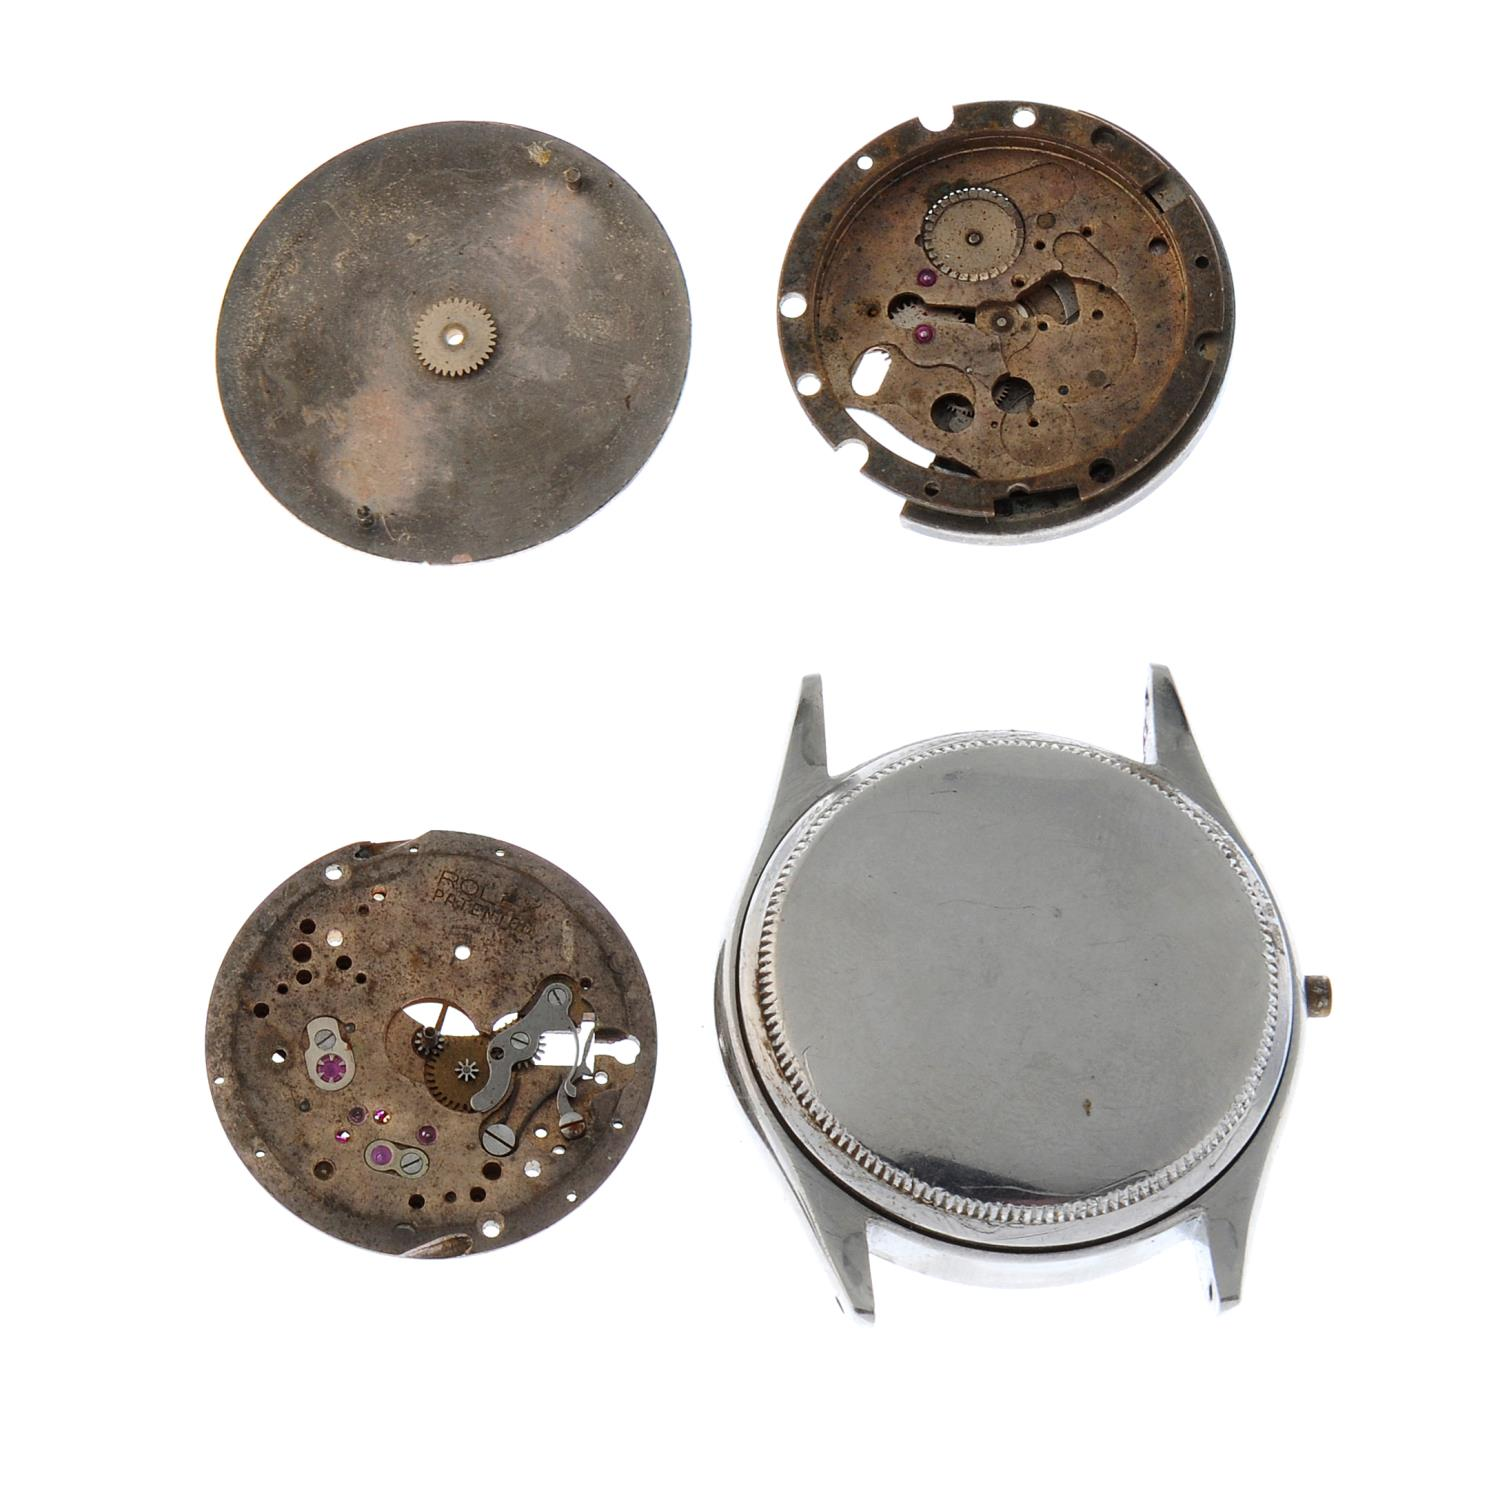 ROLEX - an Oyster Perpetual watch dial together with two incomplete signed Rolex movements and a - Image 2 of 2